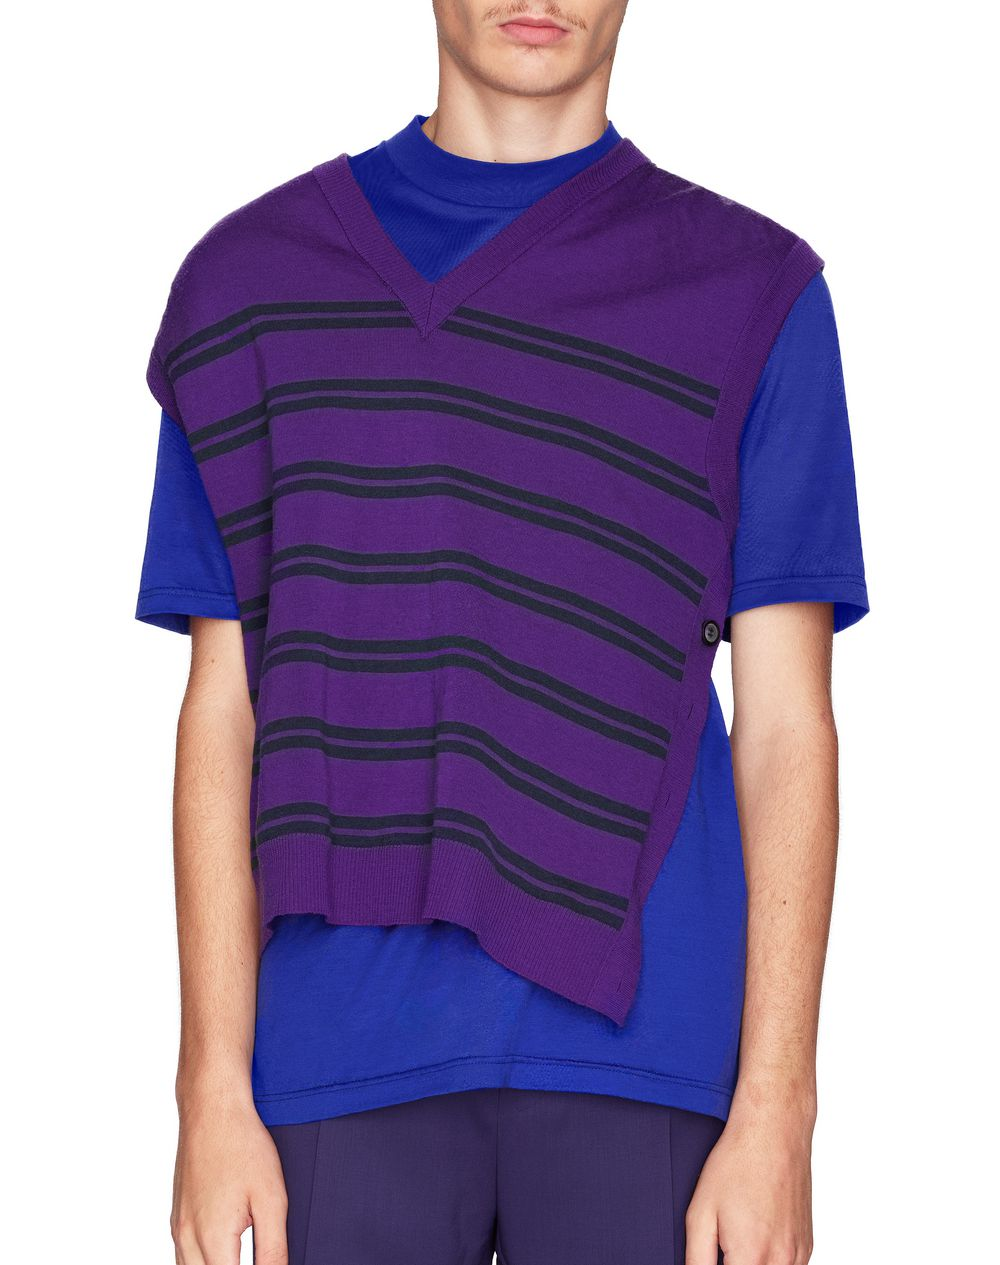 SLEEVELESS STRIPED V-NECK SWEATER - Lanvin